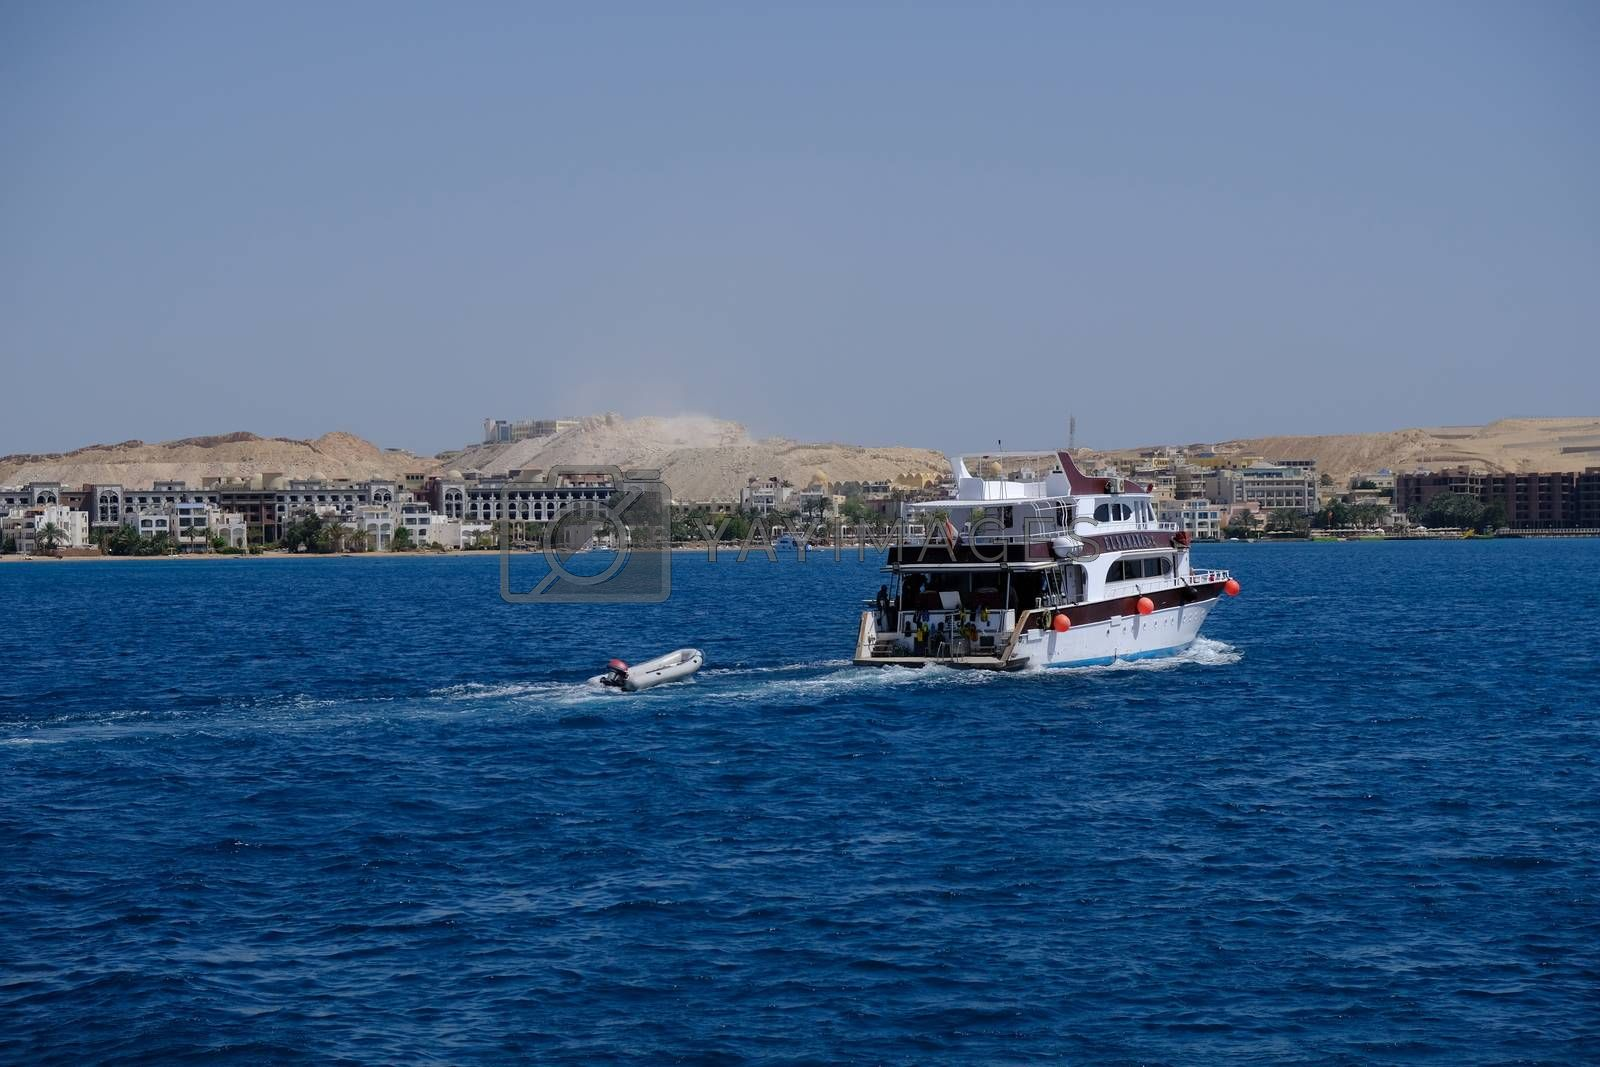 Hurghada / Egypt - May 21, 2019: Boats taking tourists for snorkeling and scuba diving near Giftun island in Red Sea, Hurghada, Egypt